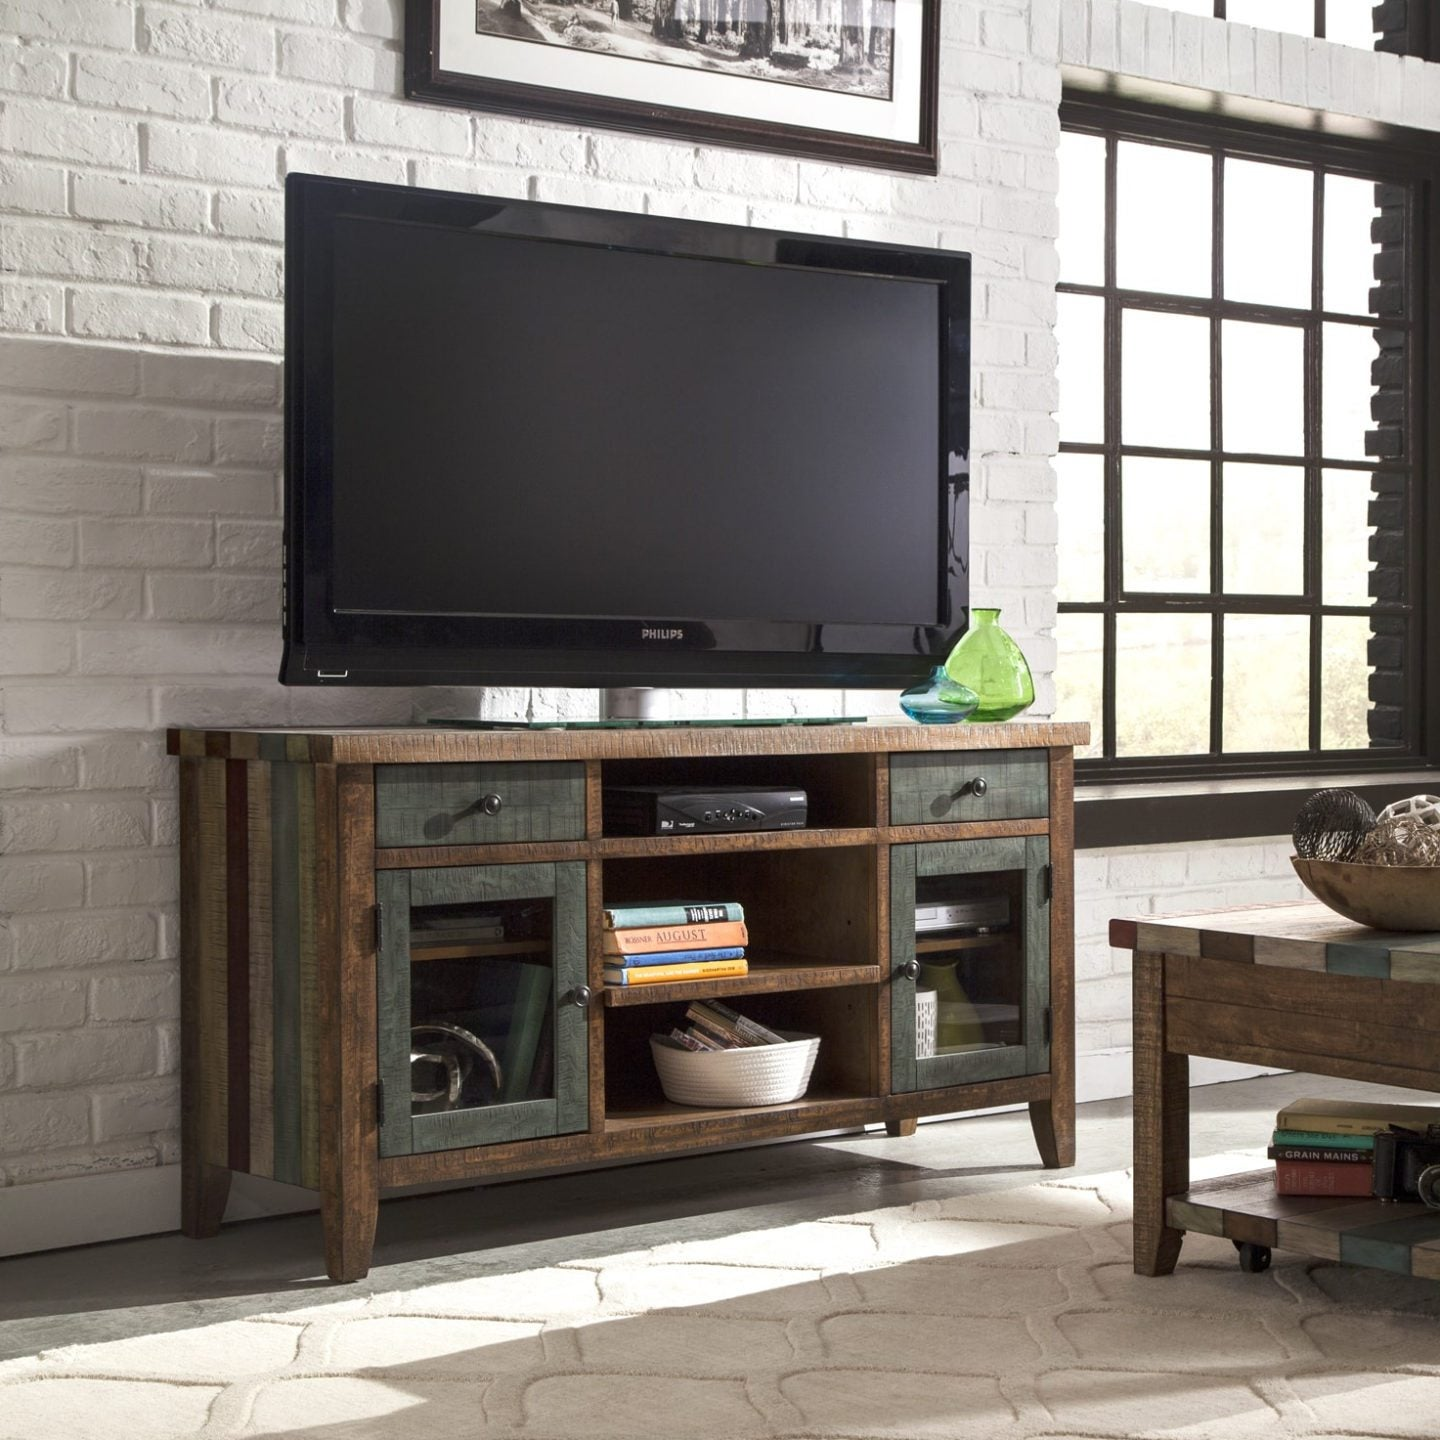 6 Tips For Buying A Great Tv Stand For Your Home Overstockcom